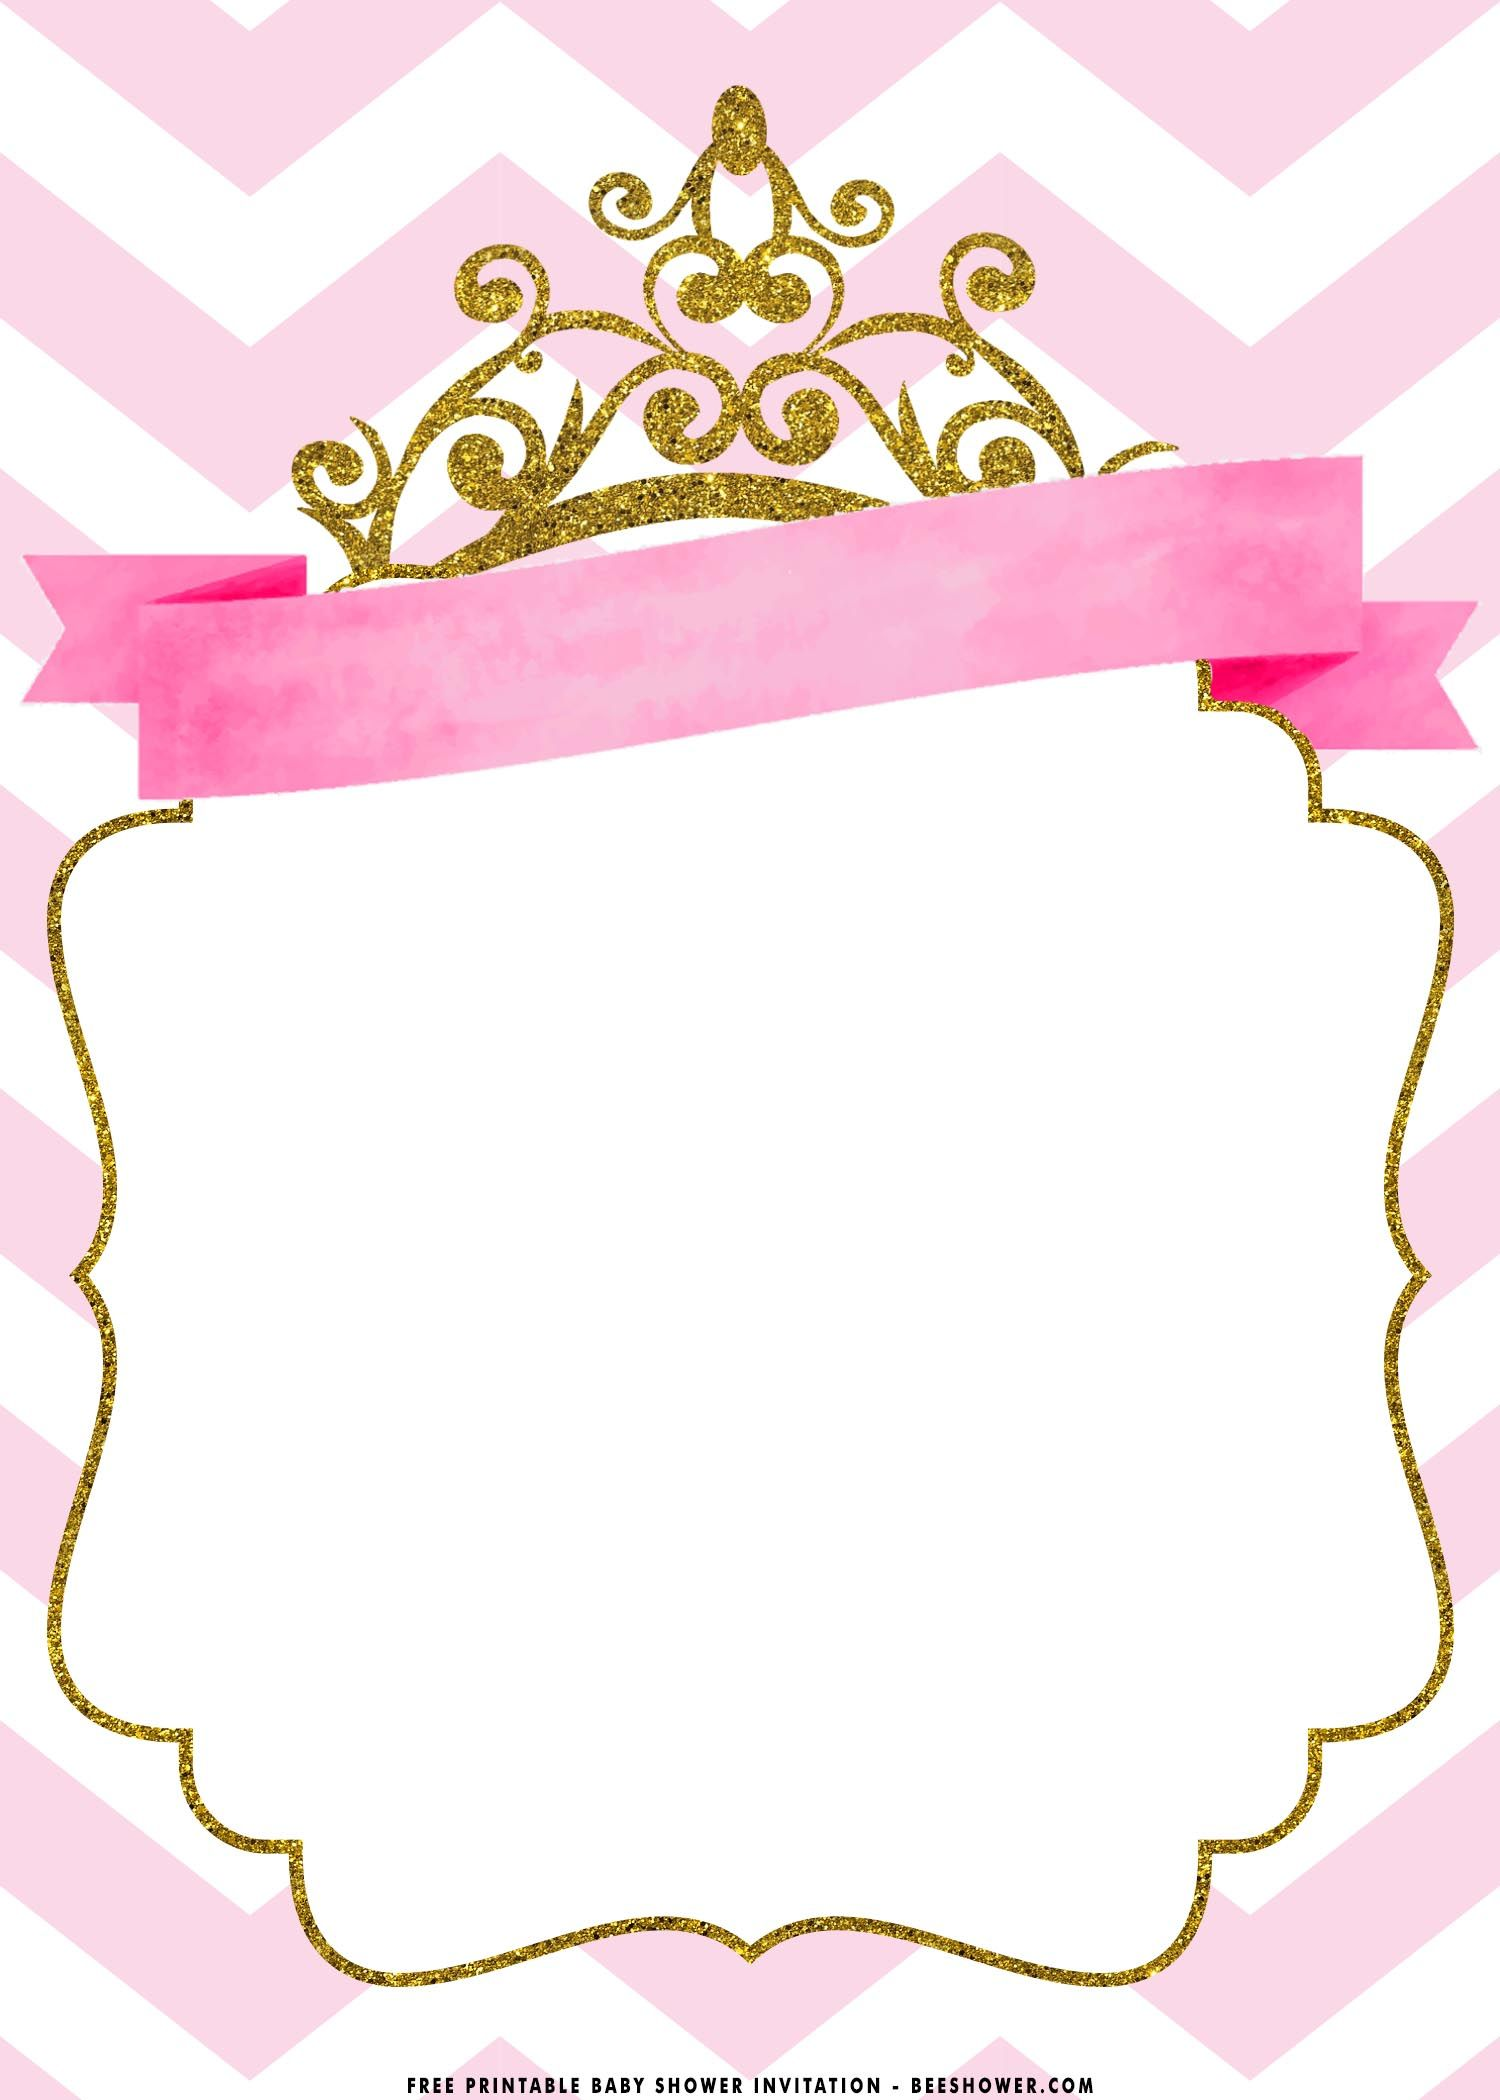 Pin On Virtual Baby Shower